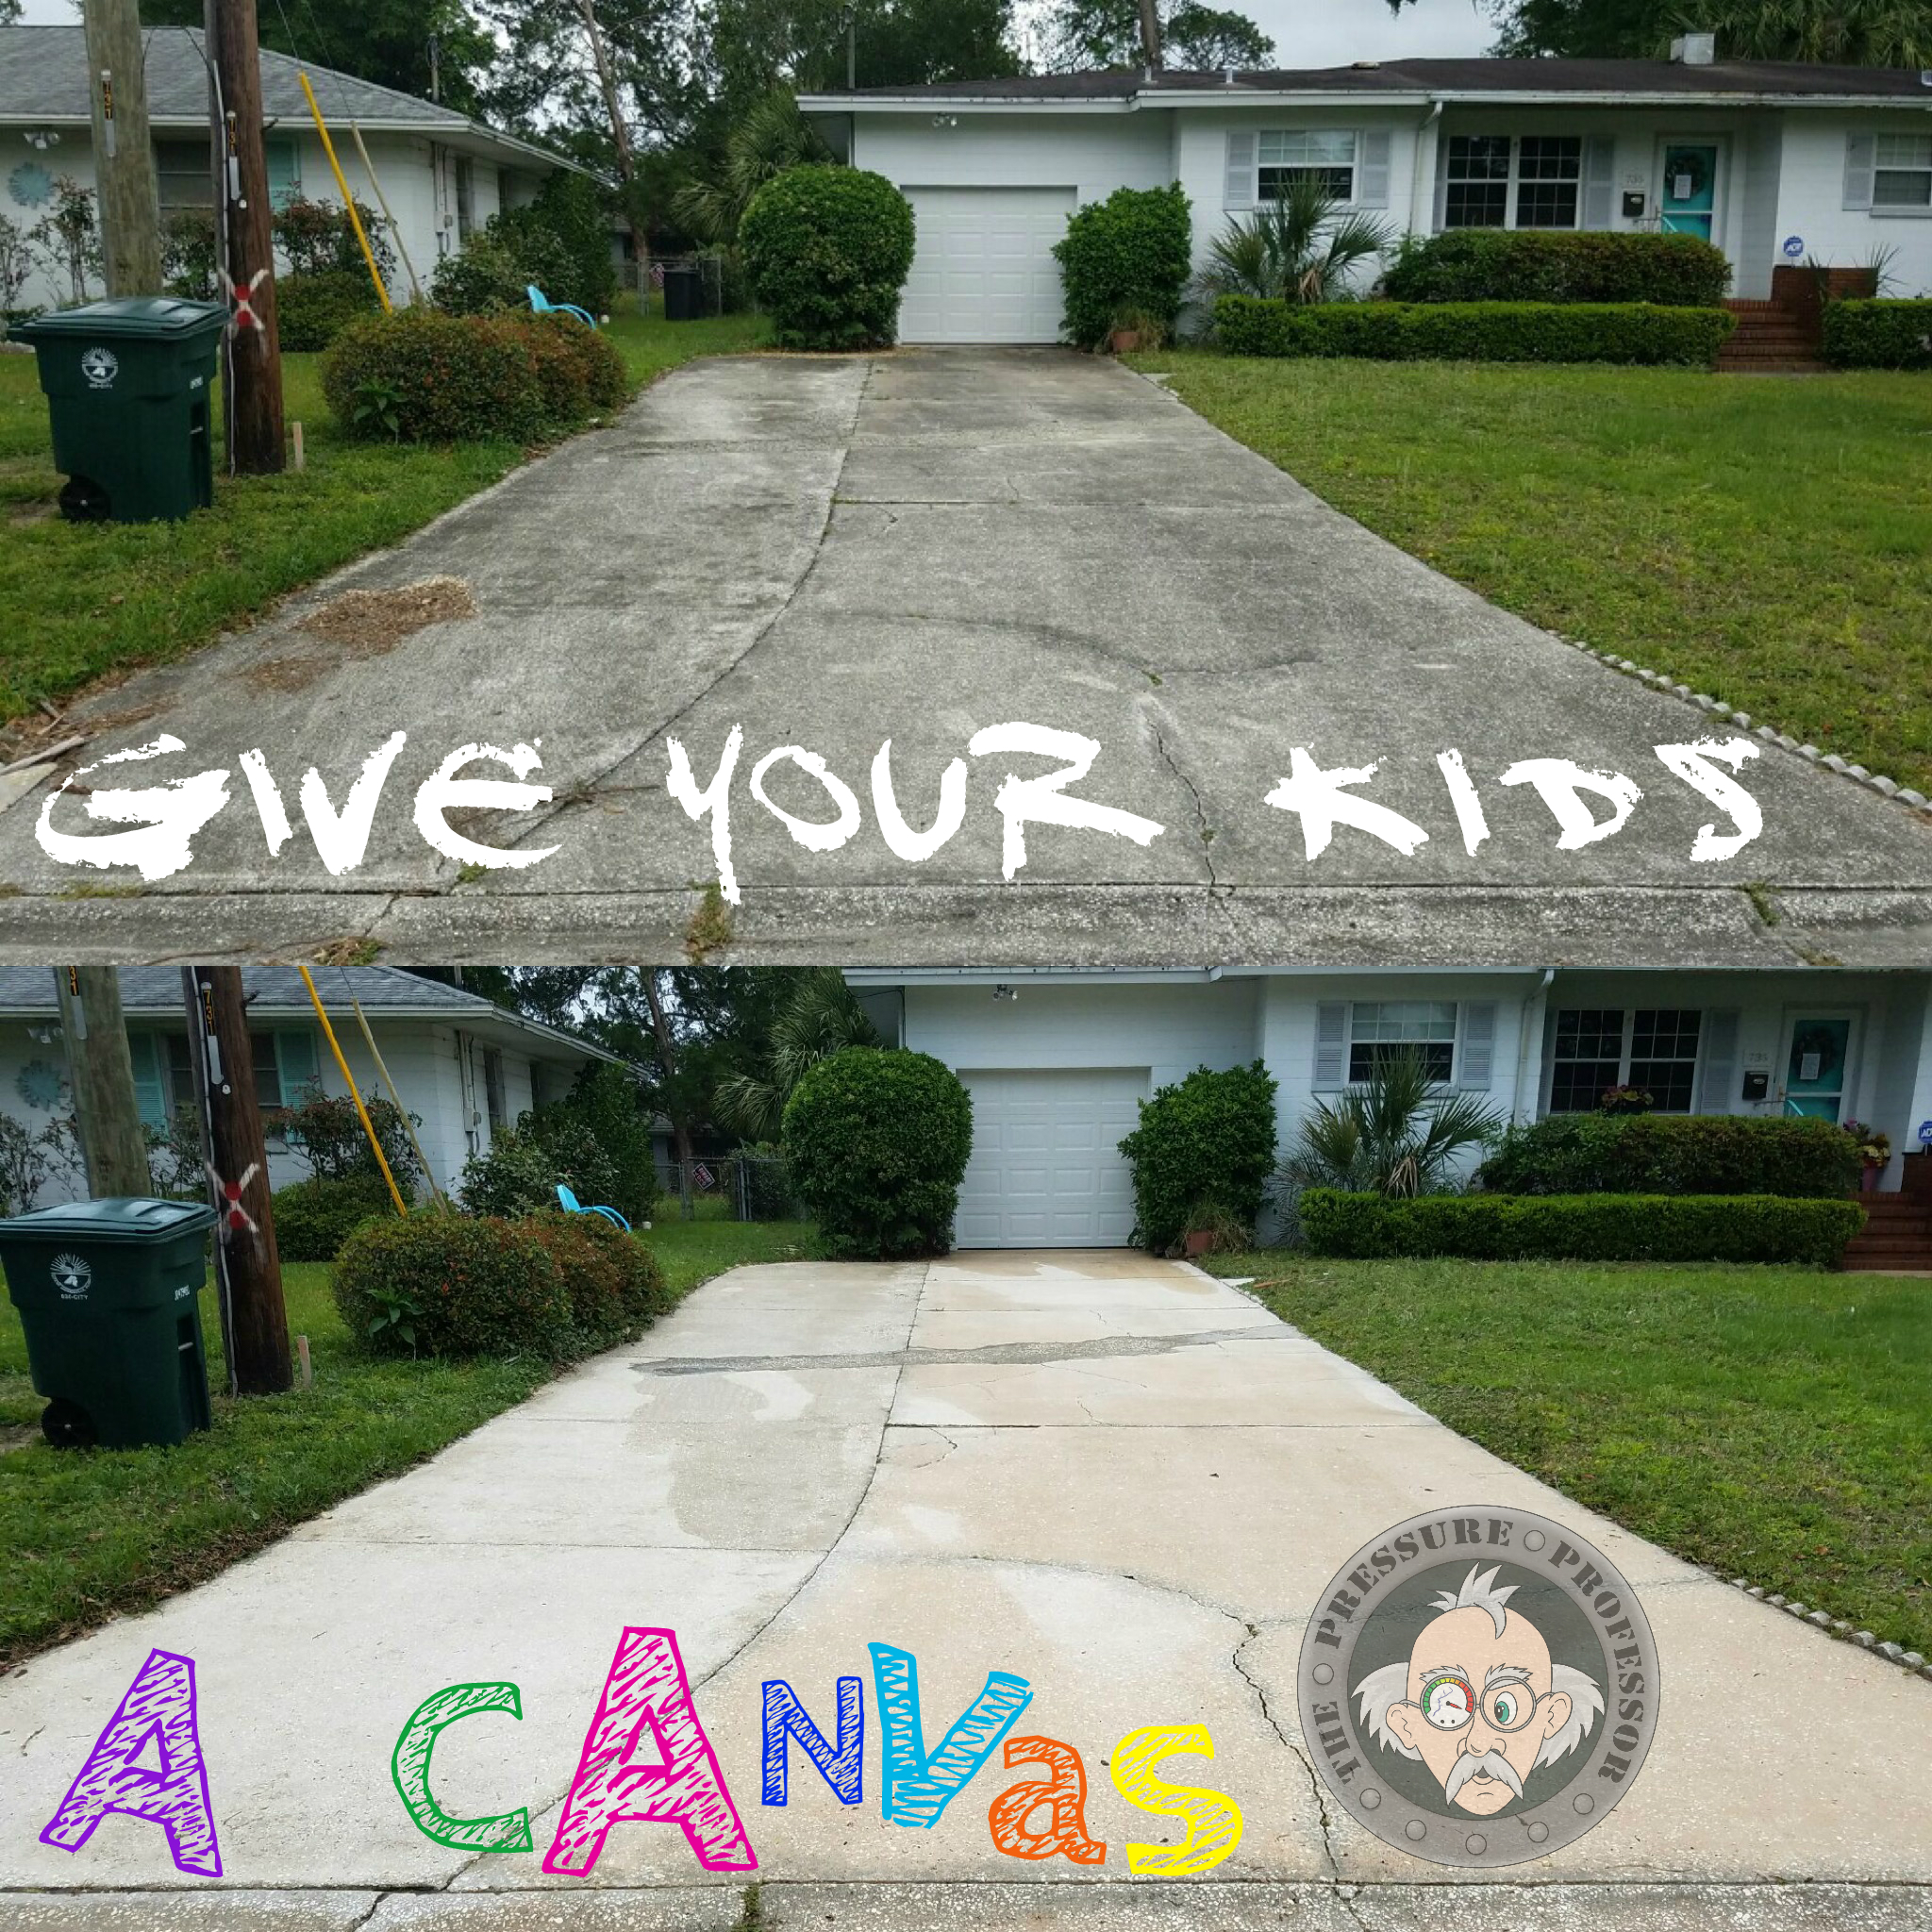 Give your kids a canvas by pressure washing your driveway! We pressure wash concrete, brick, pavers, and other hard surfaces